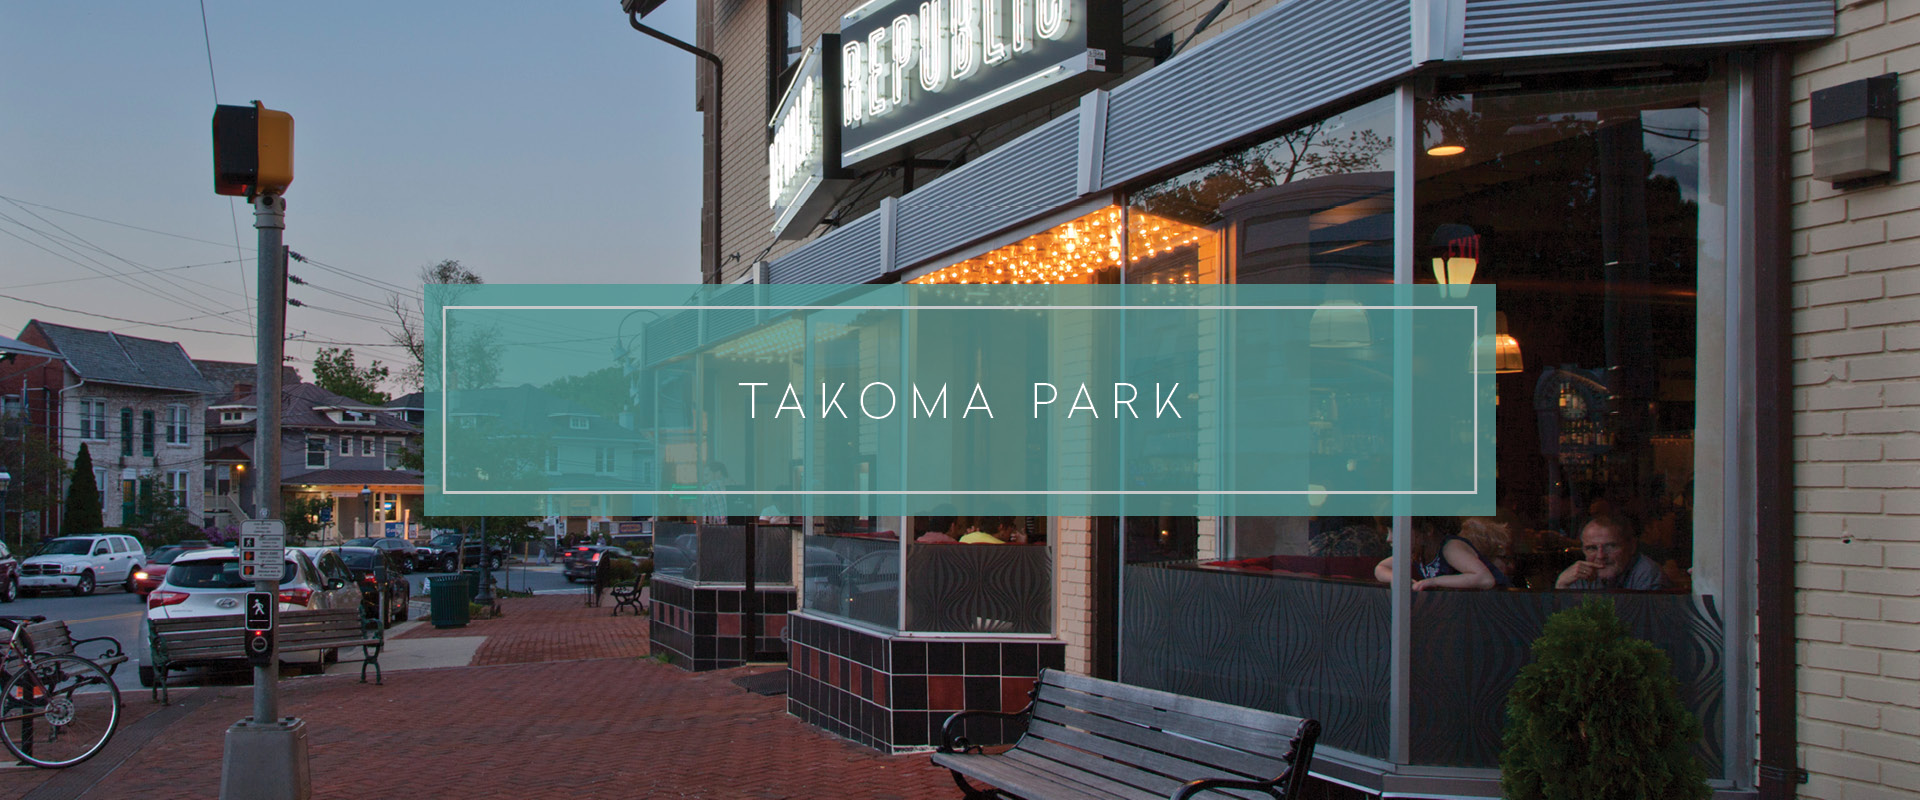 Takoma Park Homes for Sale